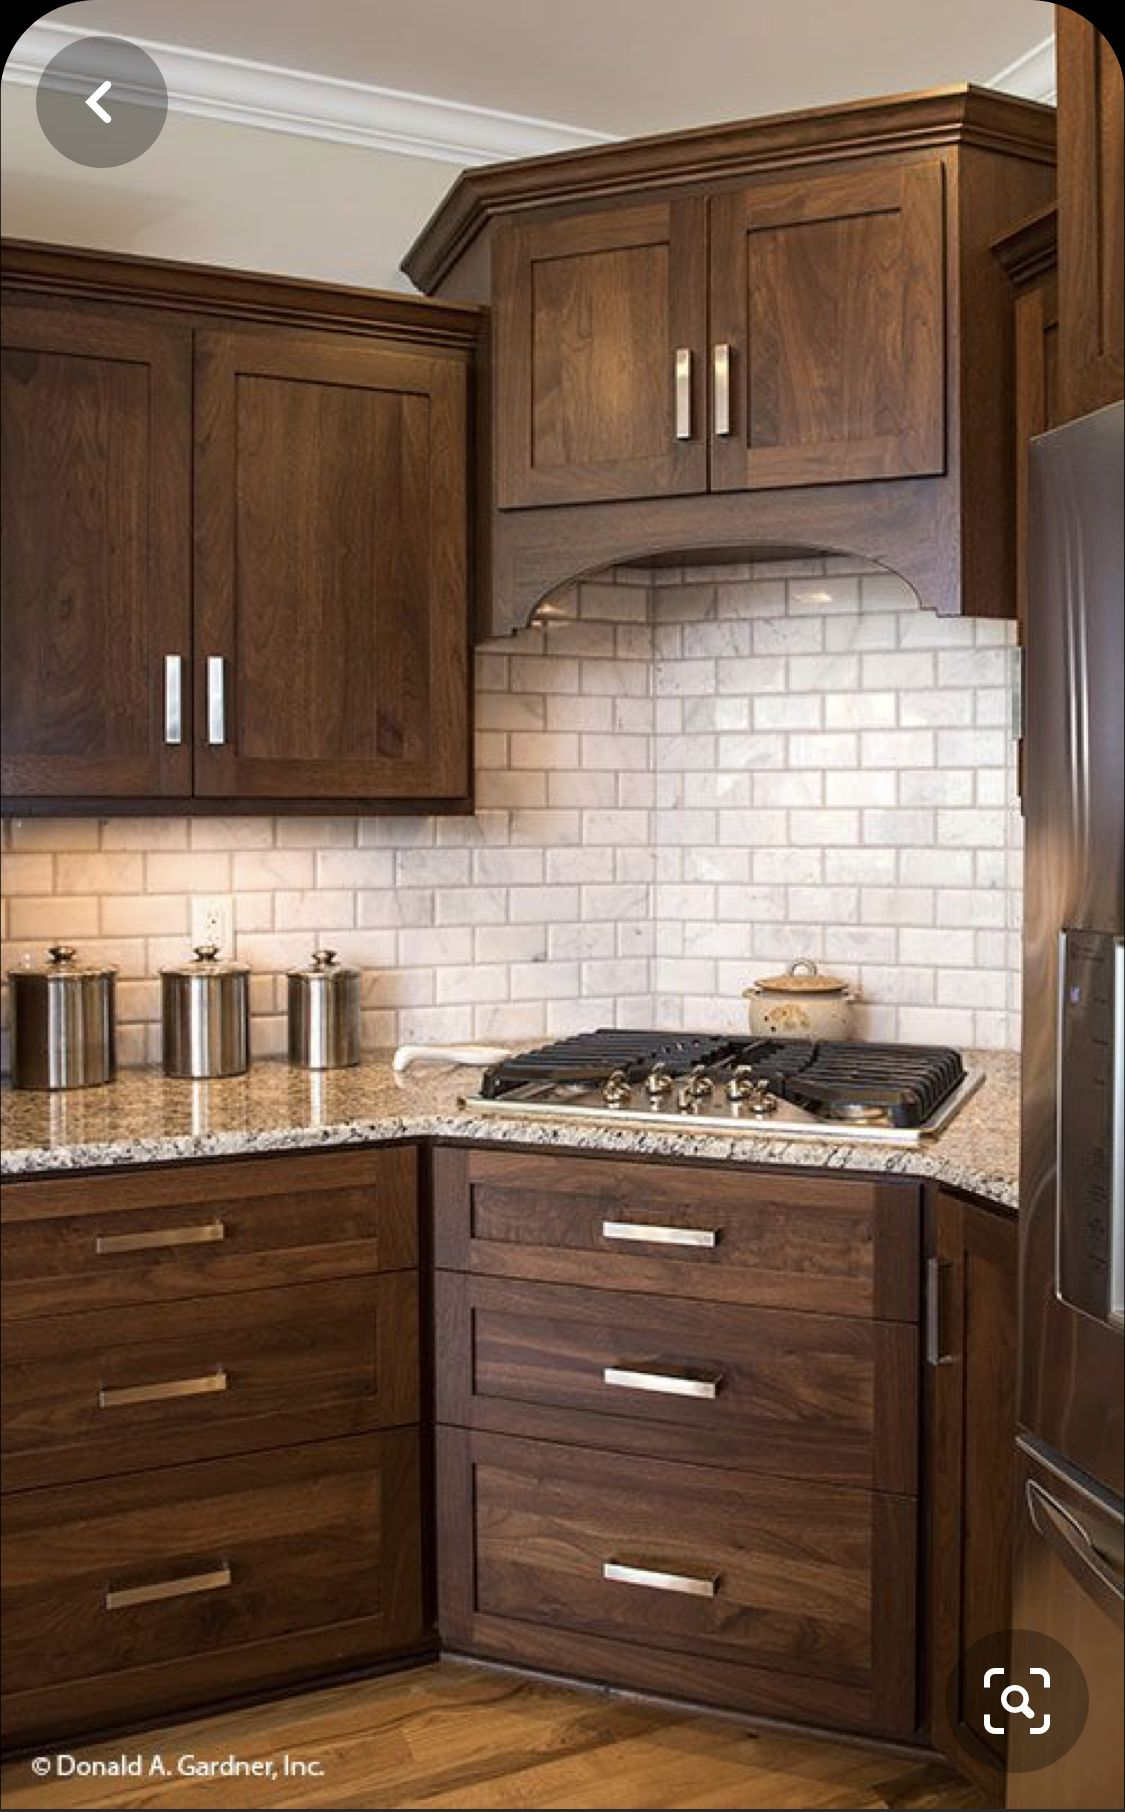 Perfect Cabinet Color In 2020 Brown Kitchen Cabinets Stained Kitchen Cabinets Walnut Kitchen Cabinets